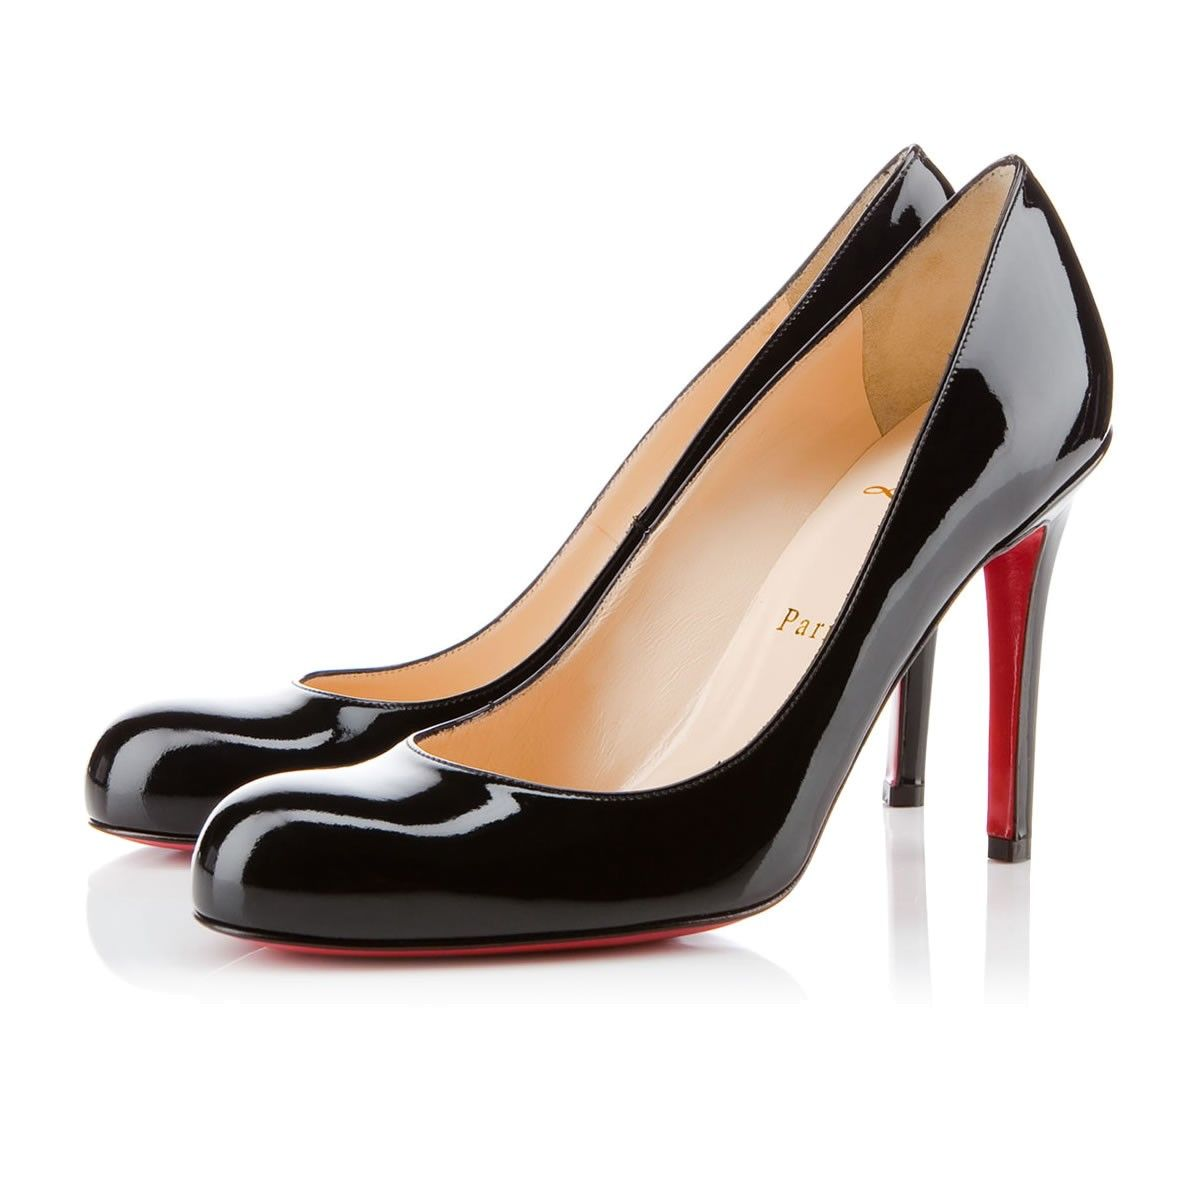 675 Simple Pump 100mm Black Patent Leather Christian Louboutin Black Pumps,  Christian Louboutin Outlet, dc962020d0b9